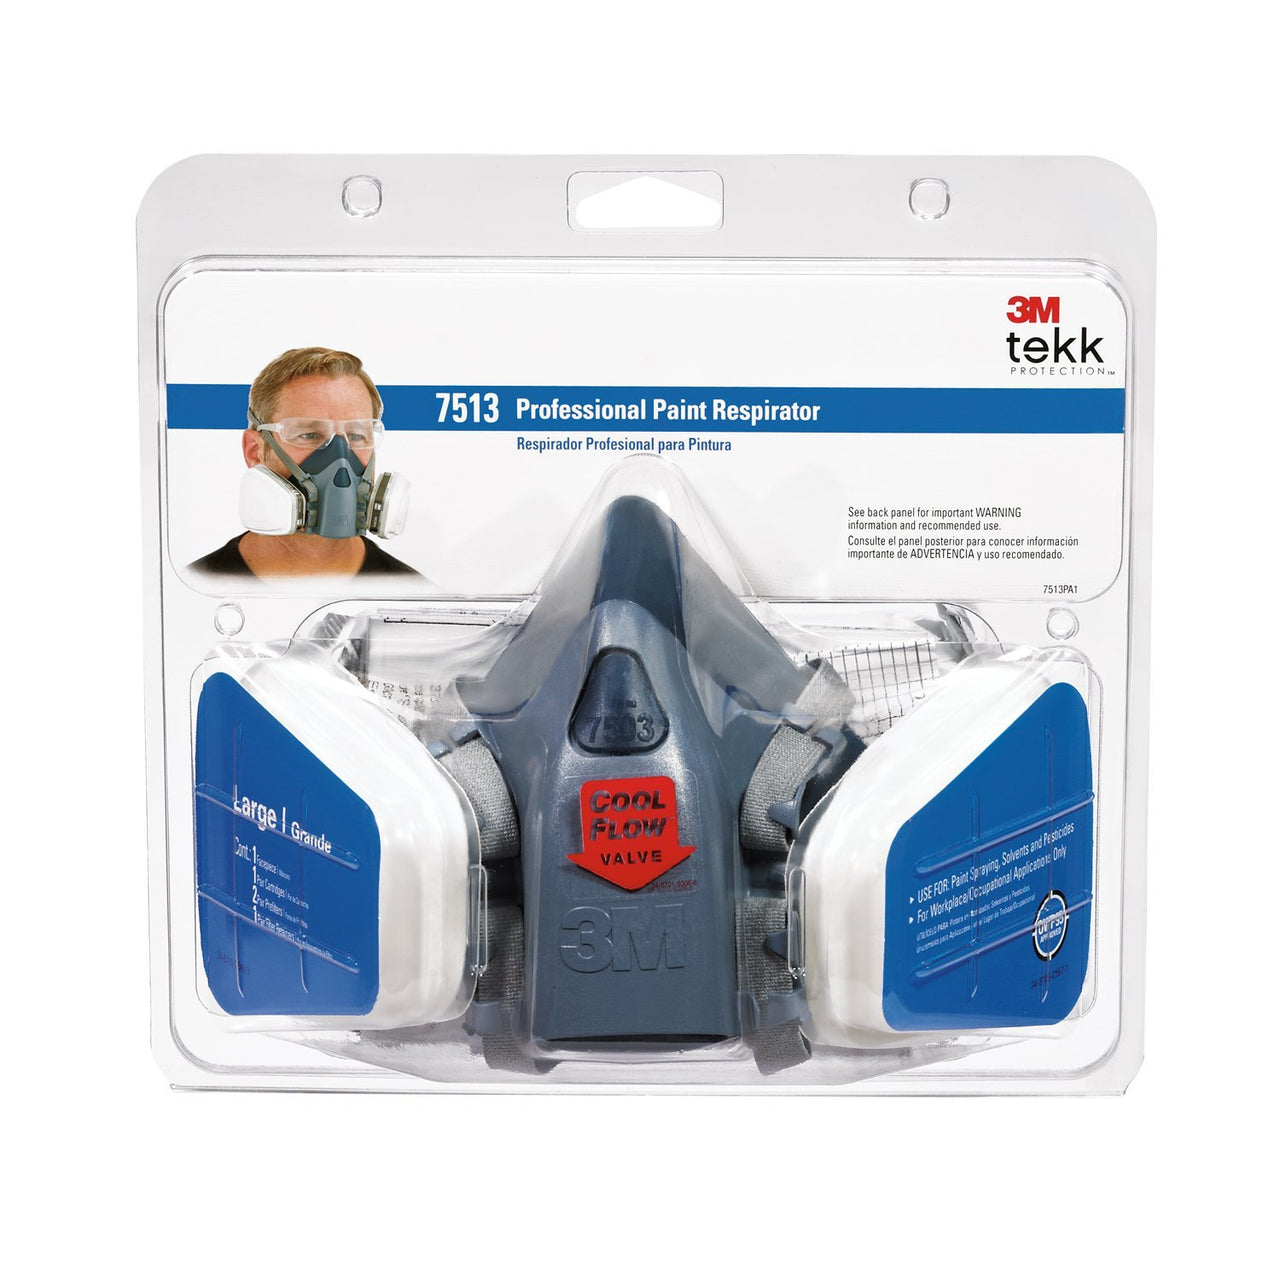 3M 7513PA1-A-PS Tekk Protection Professional Paint Spray Respirator, Large